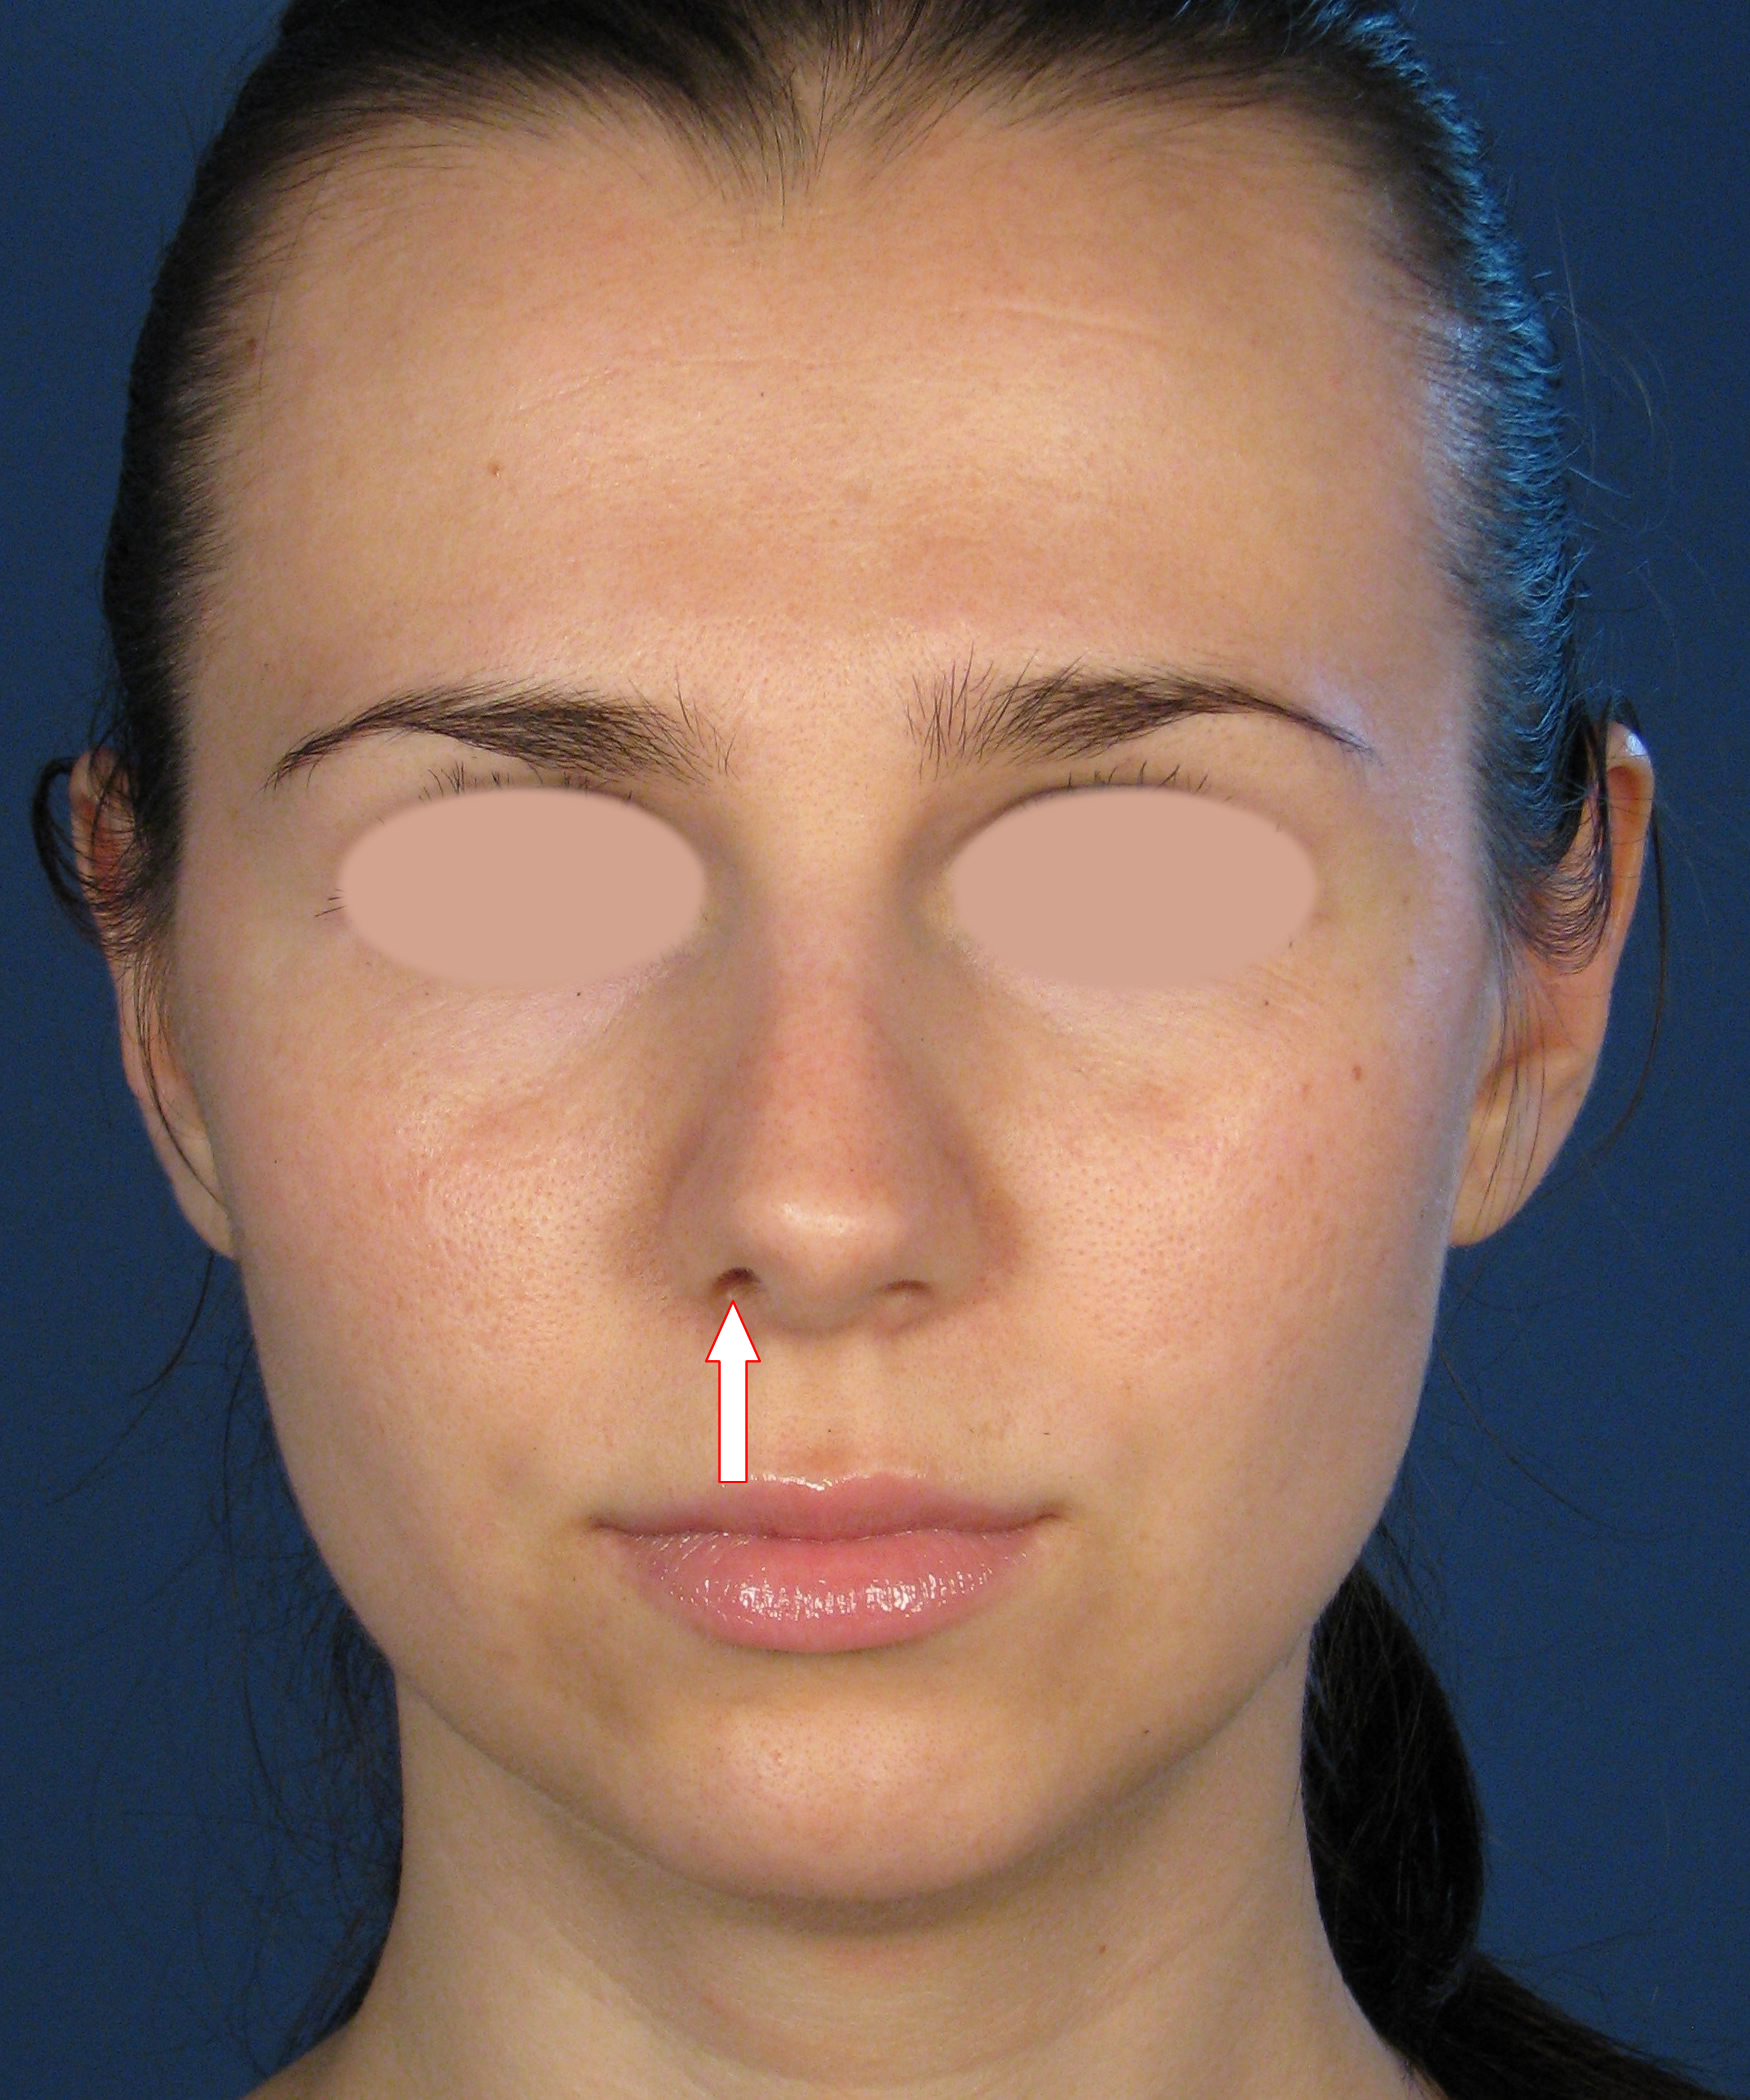 San Diego Plastic Surgery Revision Nose Expert - Example ...